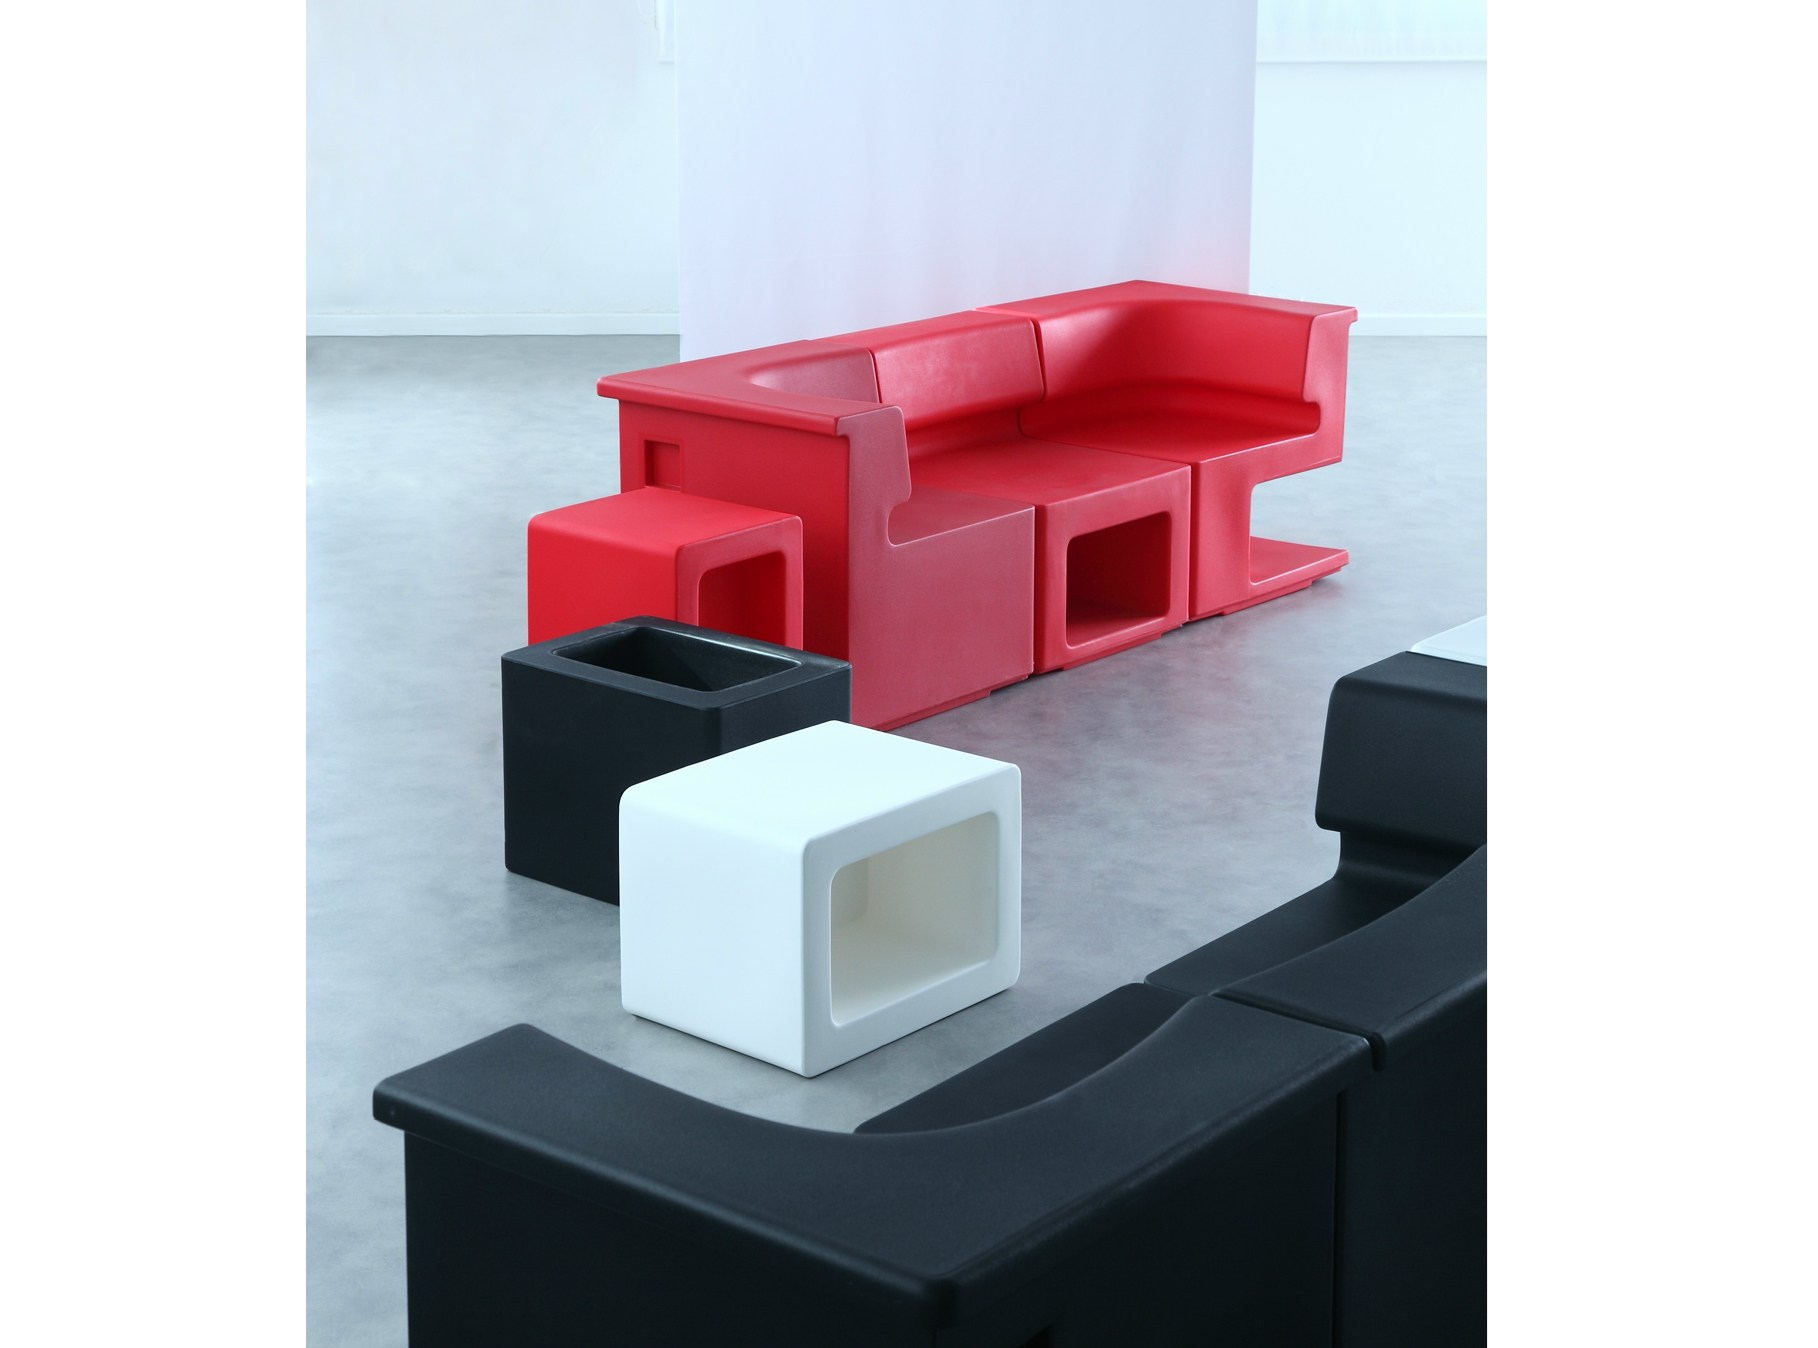 sitzpuff couchtisch aus polyethylen vas by area declic. Black Bedroom Furniture Sets. Home Design Ideas